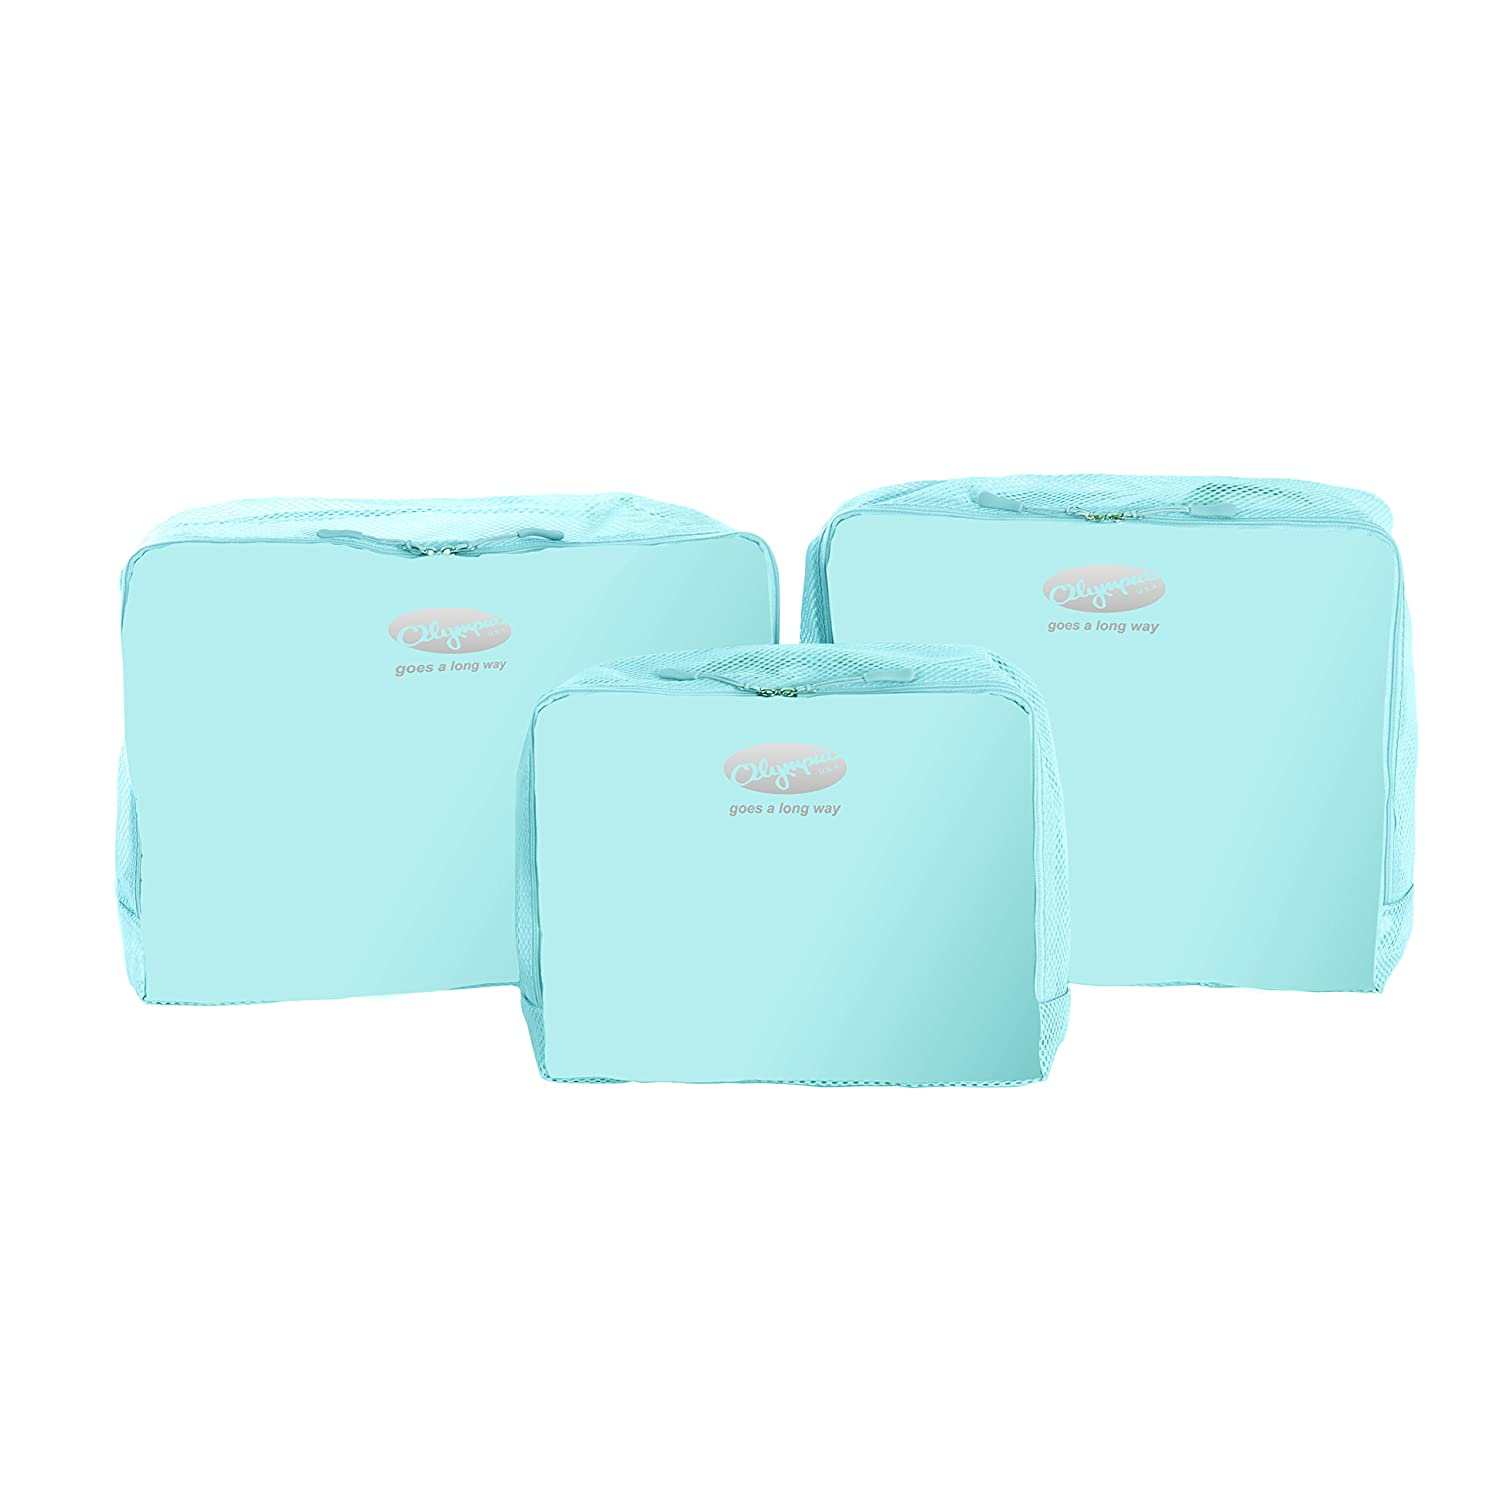 Olympia 3 Piece Packing Pouch Set, Mint, One Size good